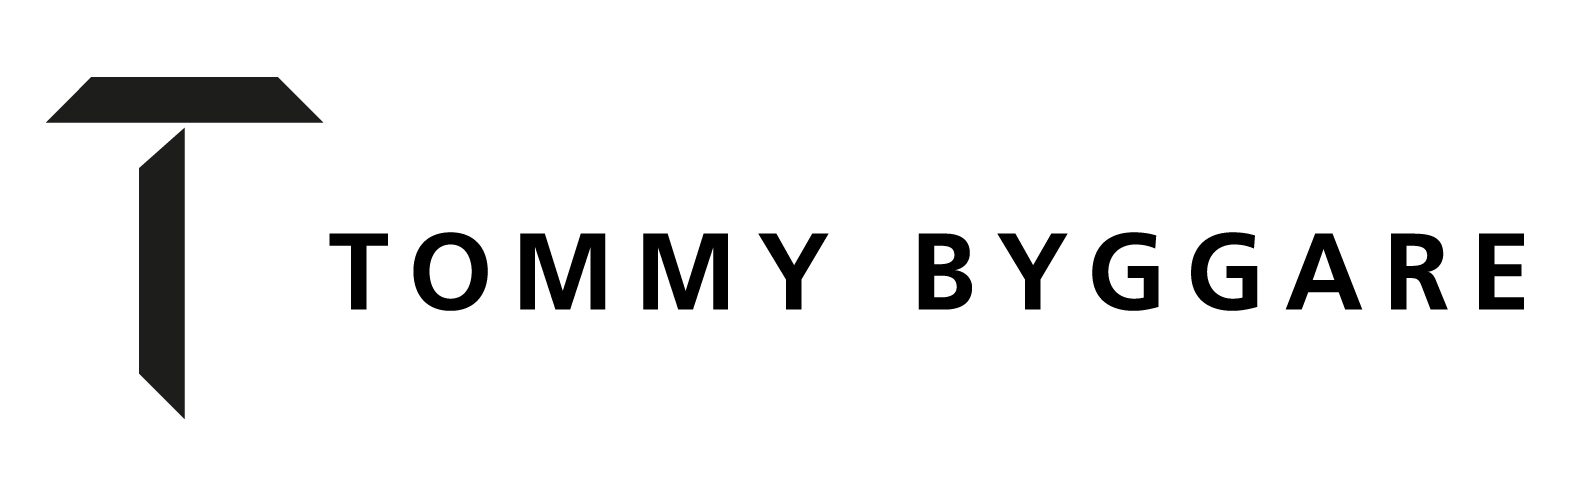 Tommy Byggare